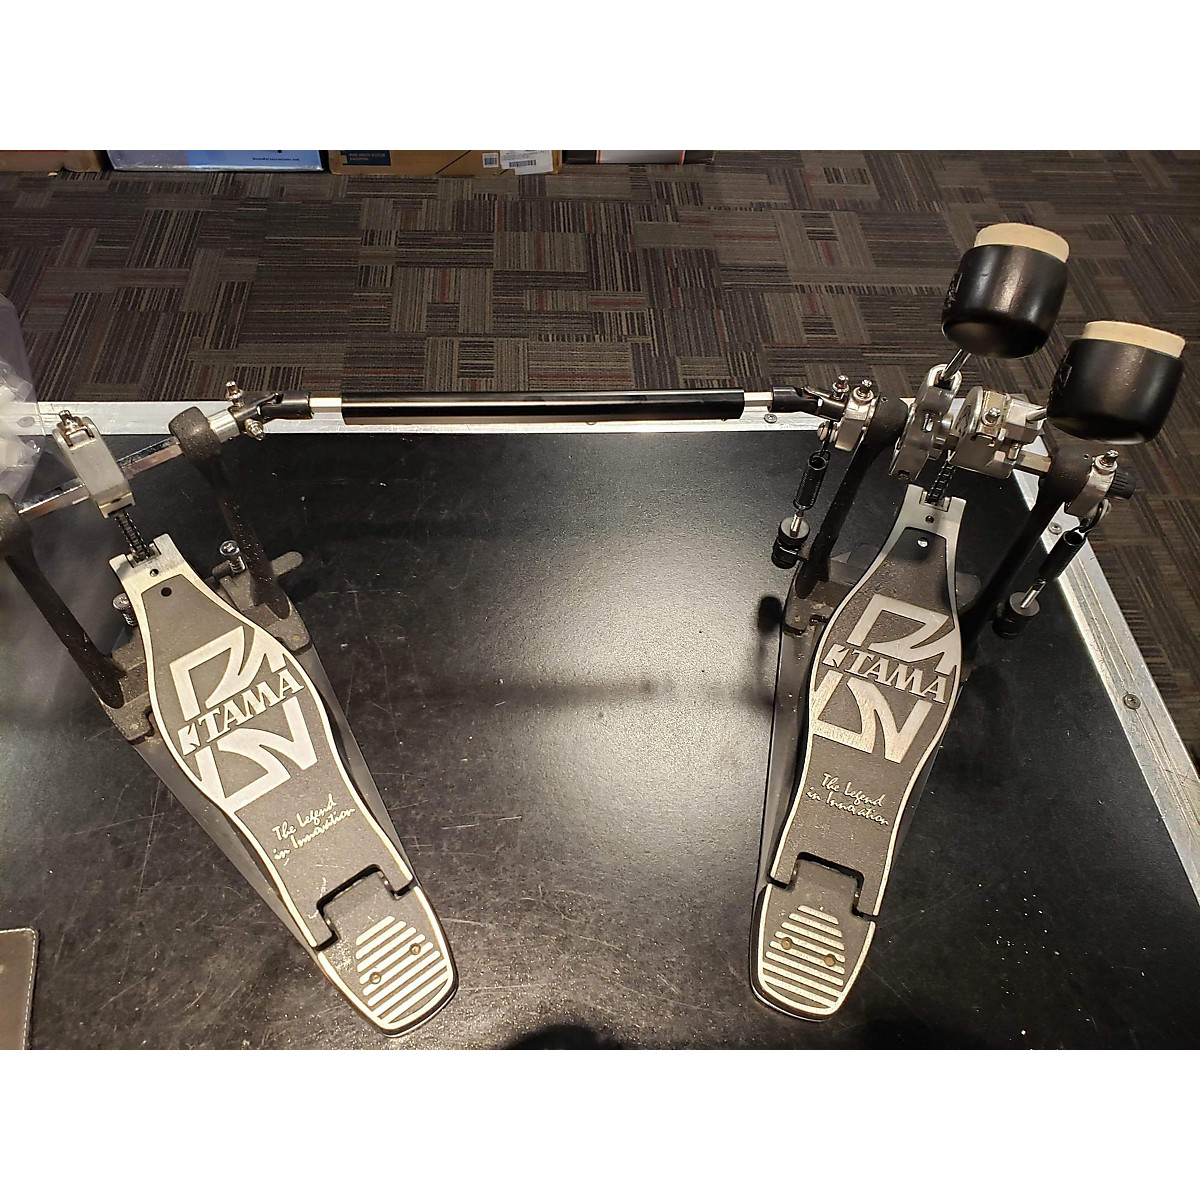 TAMA POWERGLIDE PEDALS